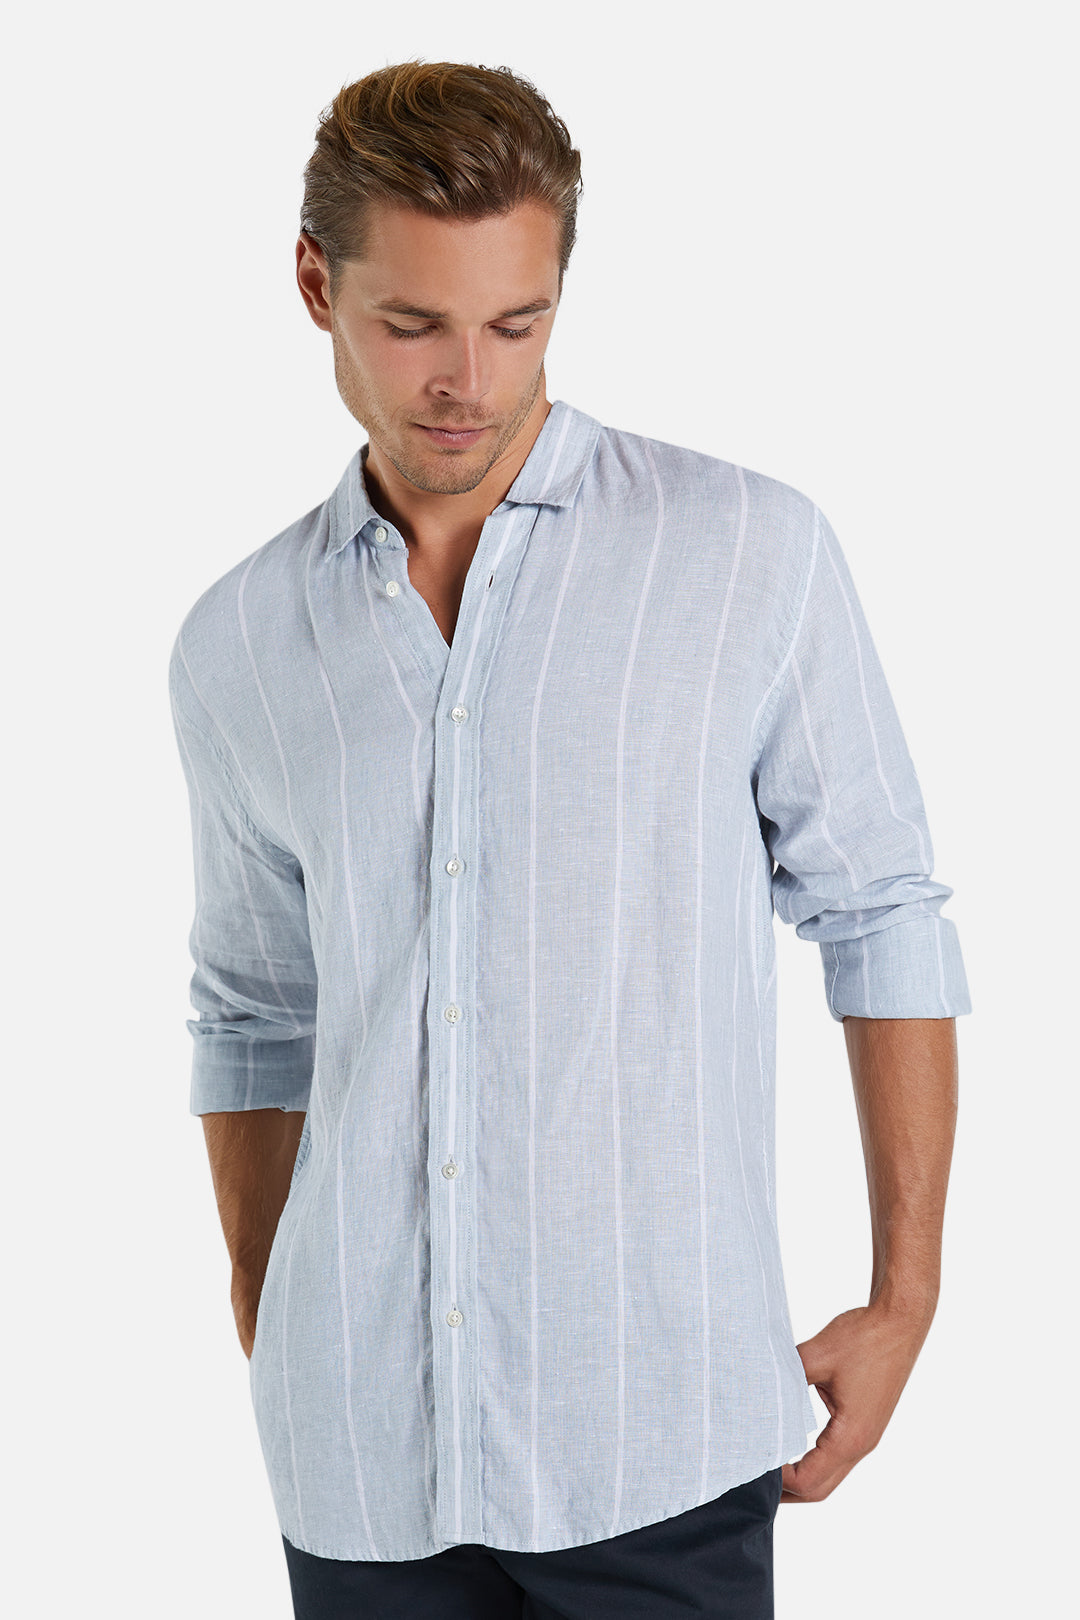 The Baja Linen L/S Shirt - Vintage Blue White